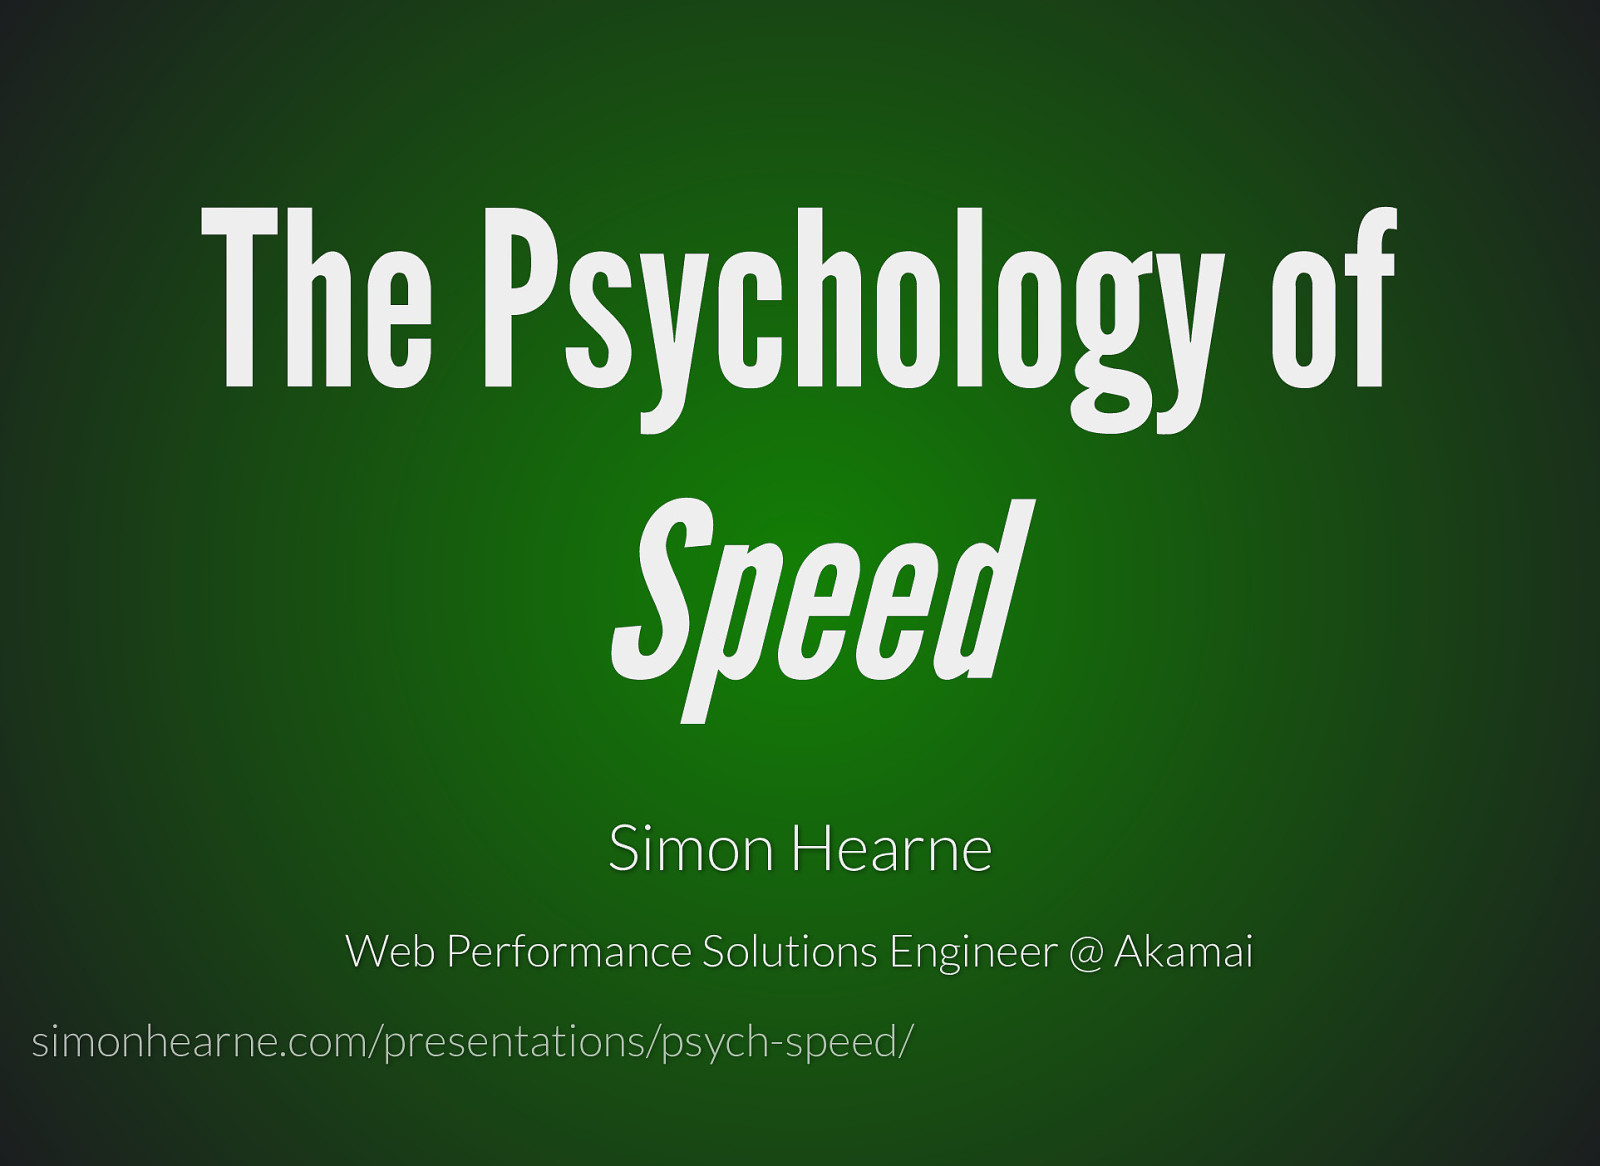 The Psychology of Speed